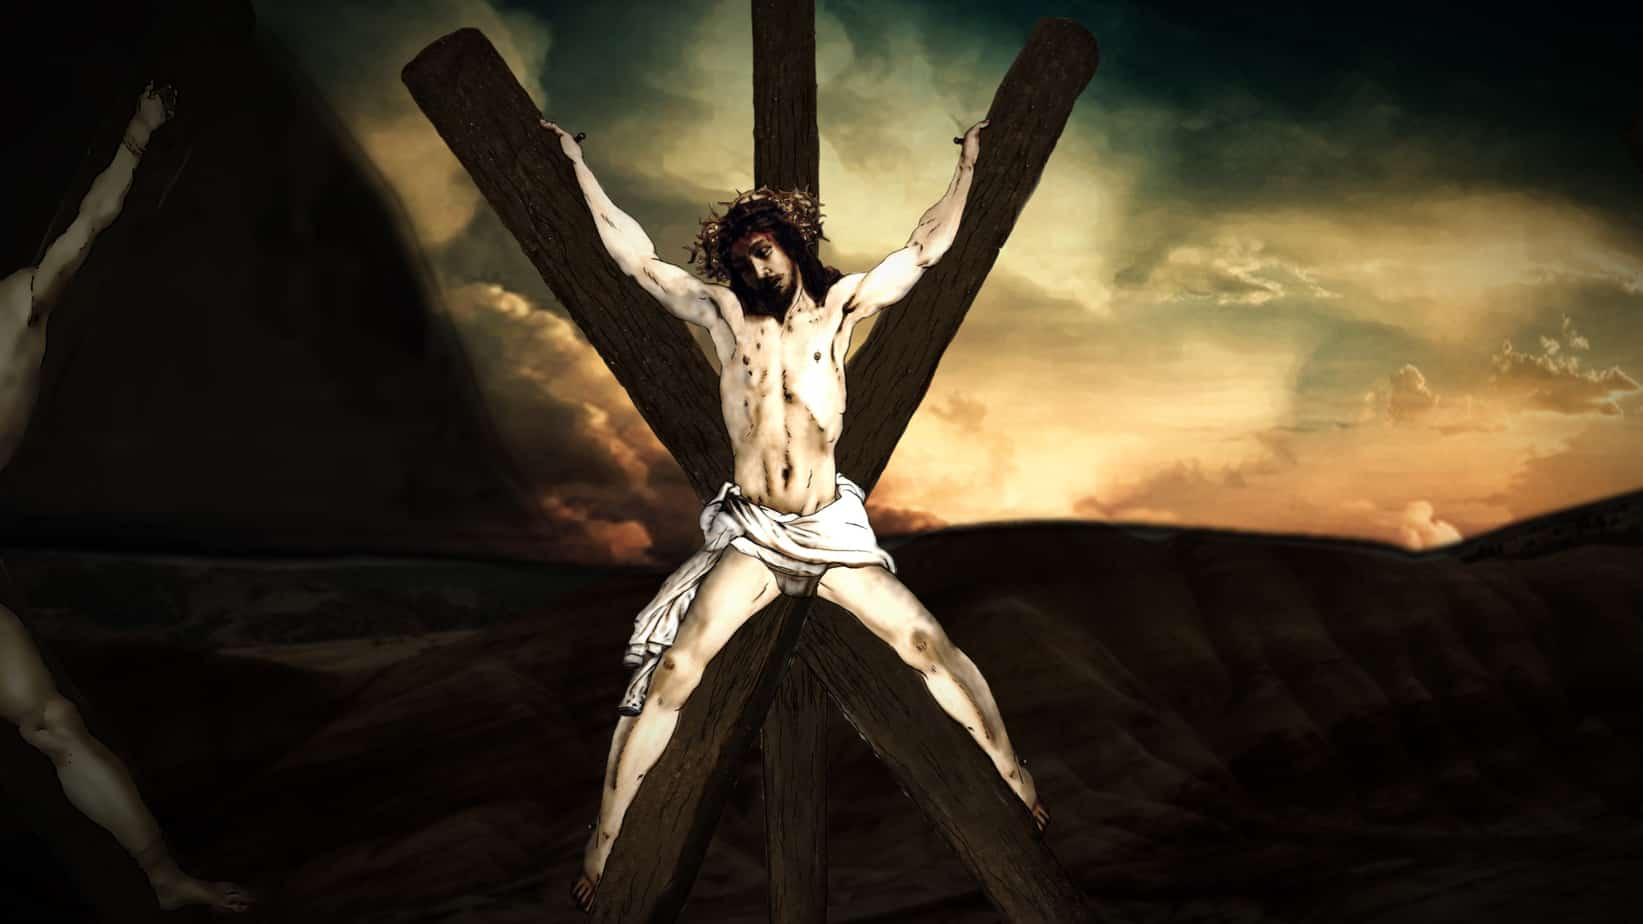 crucifixion u201cthat most wretched of deaths u201d what do we know